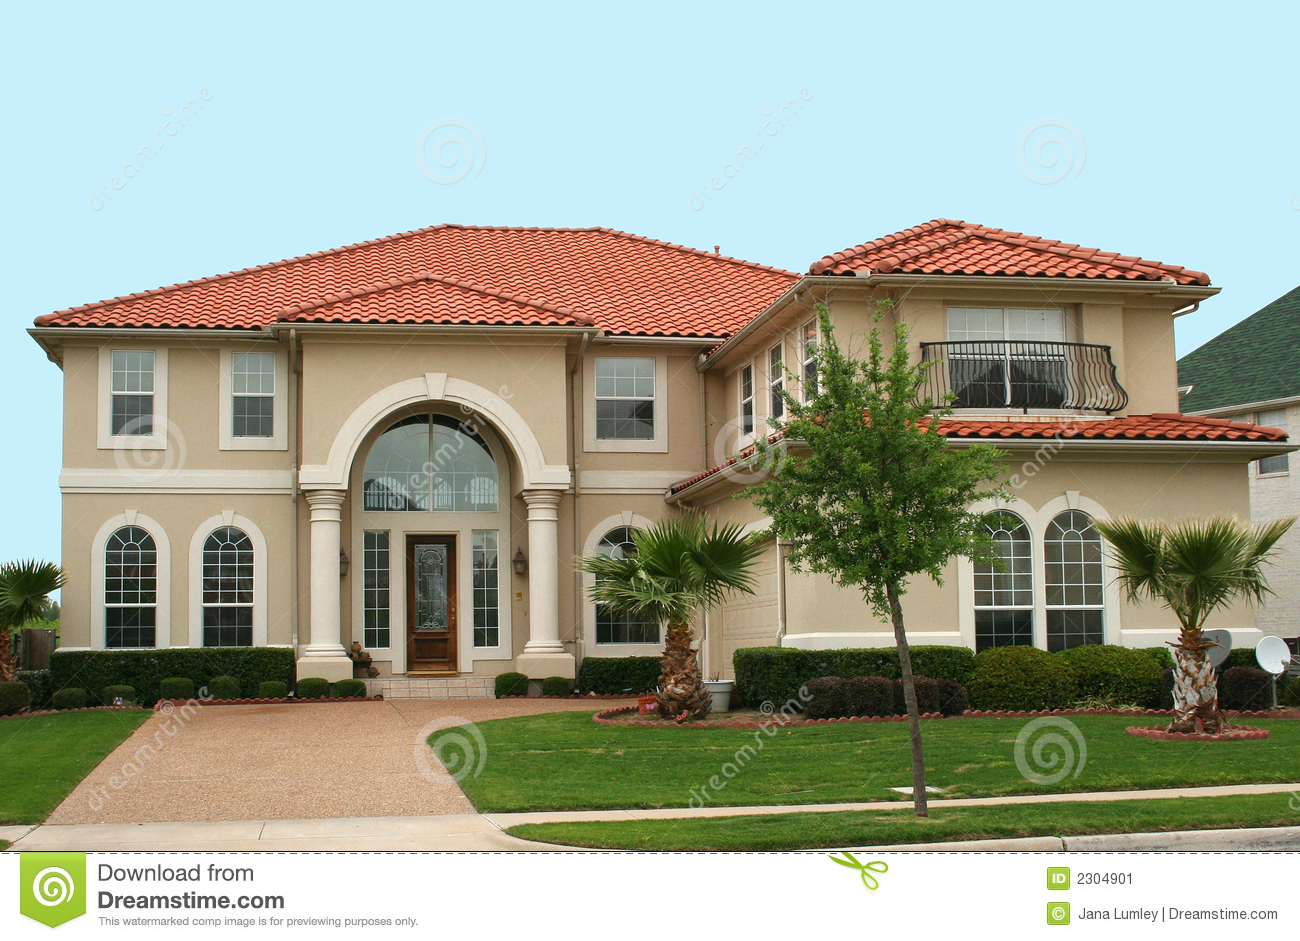 homes with exterior tile with Image Stock Maison M C3 A9diterran C3 A9enne De Type Image2304901 on Amazing Sunrooms Bay Area Stone Floors moreover Southern Mansion in addition Insignia also Prefab Modern Farmhouse together with Home.